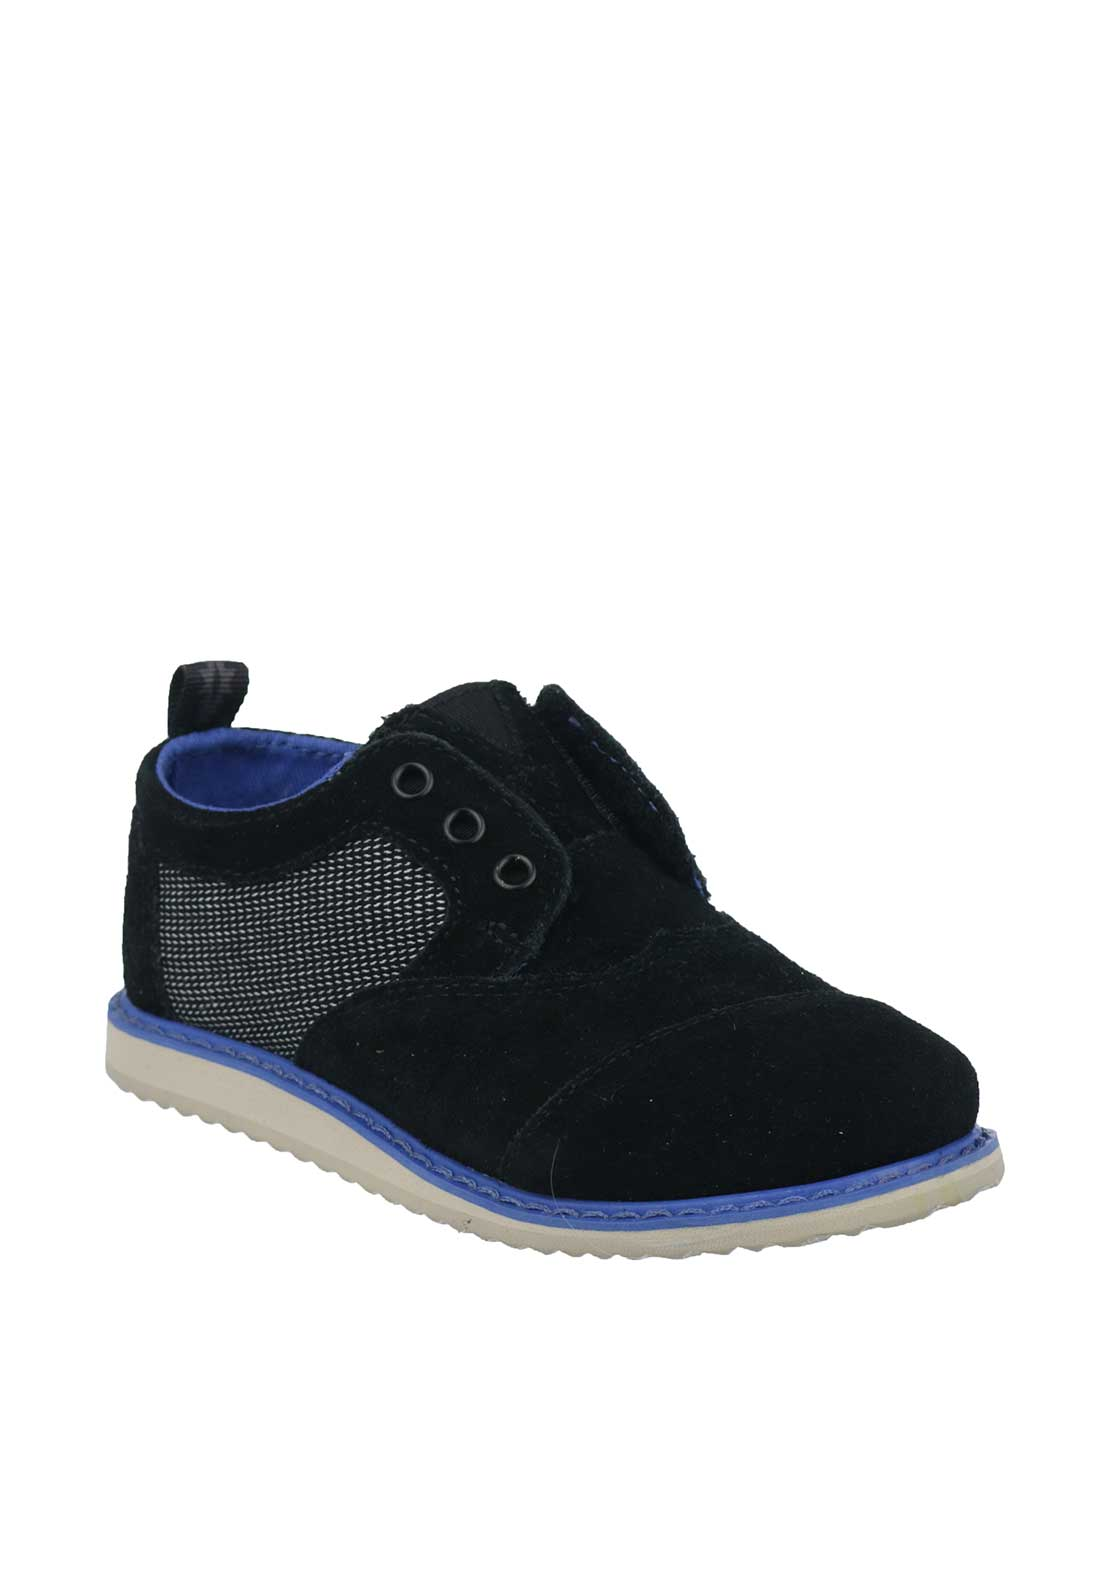 TOMS Baby Boys Suede Brogue Shoes, Black